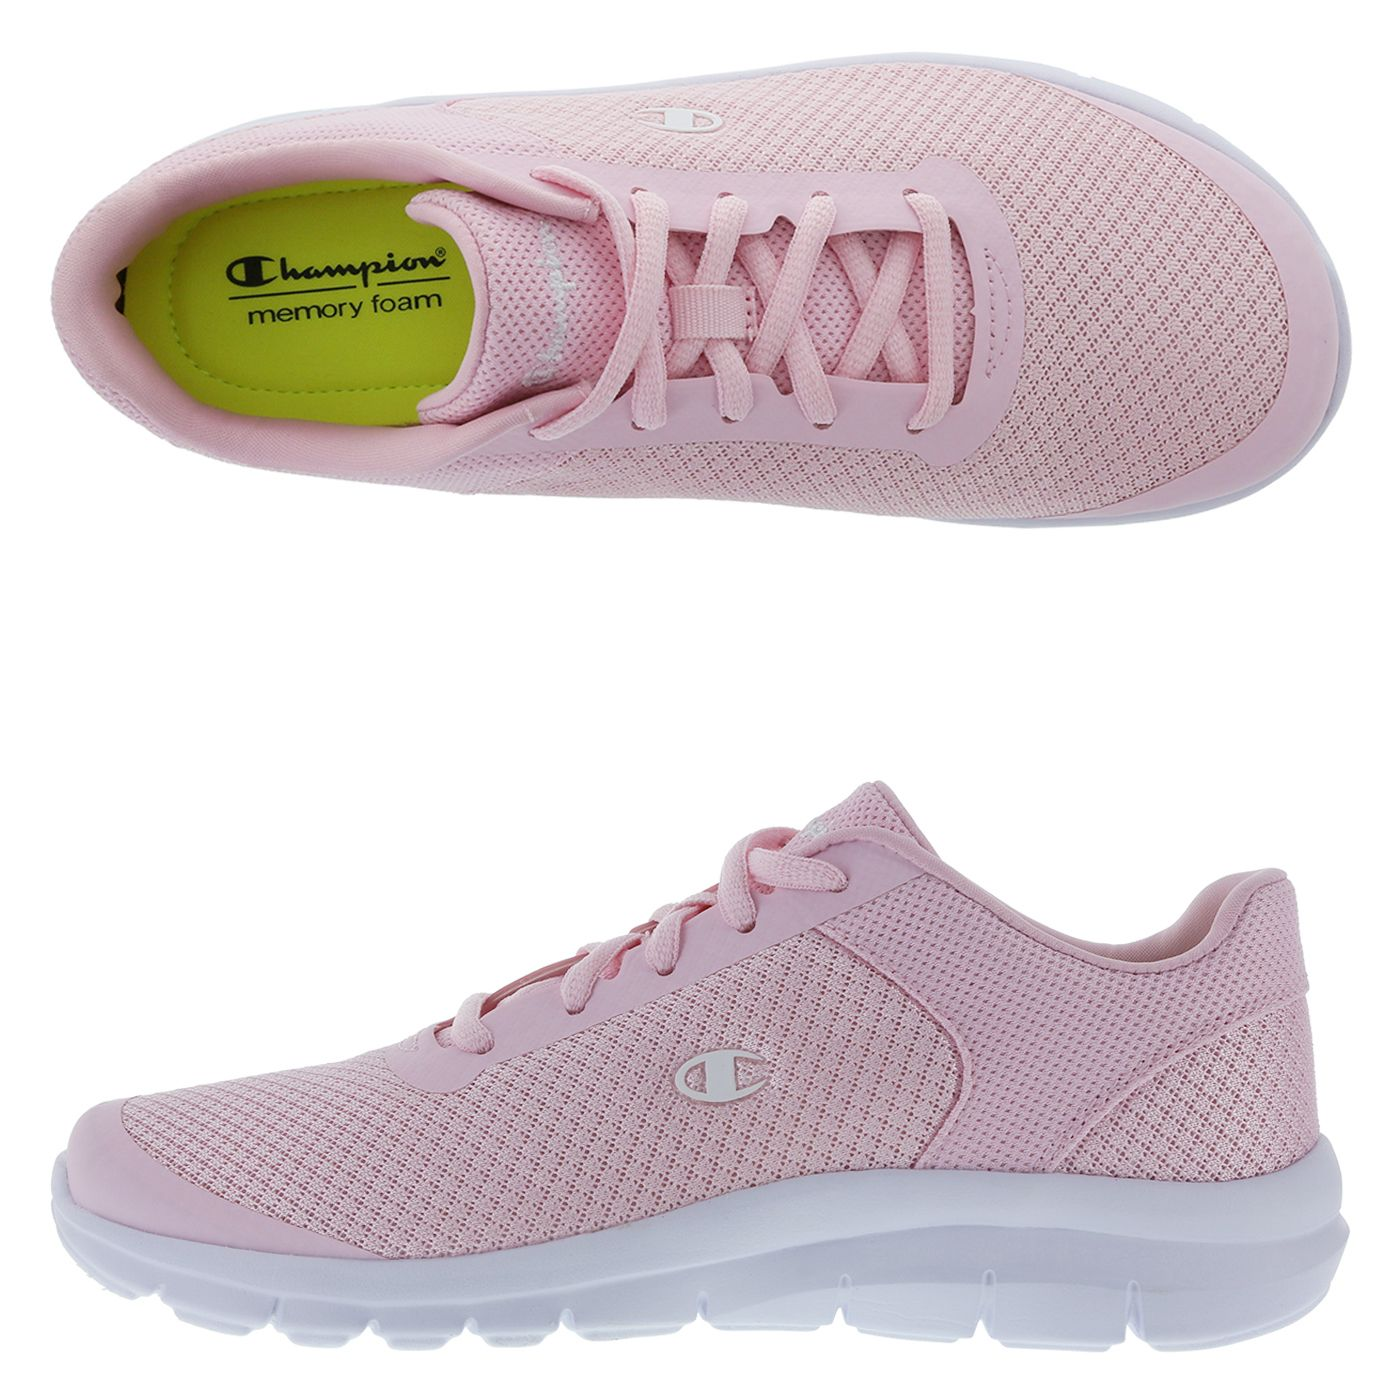 05a2740b2bd The Gusto Performance Cross Trainer from Champion can help you get there.  It features a breathable